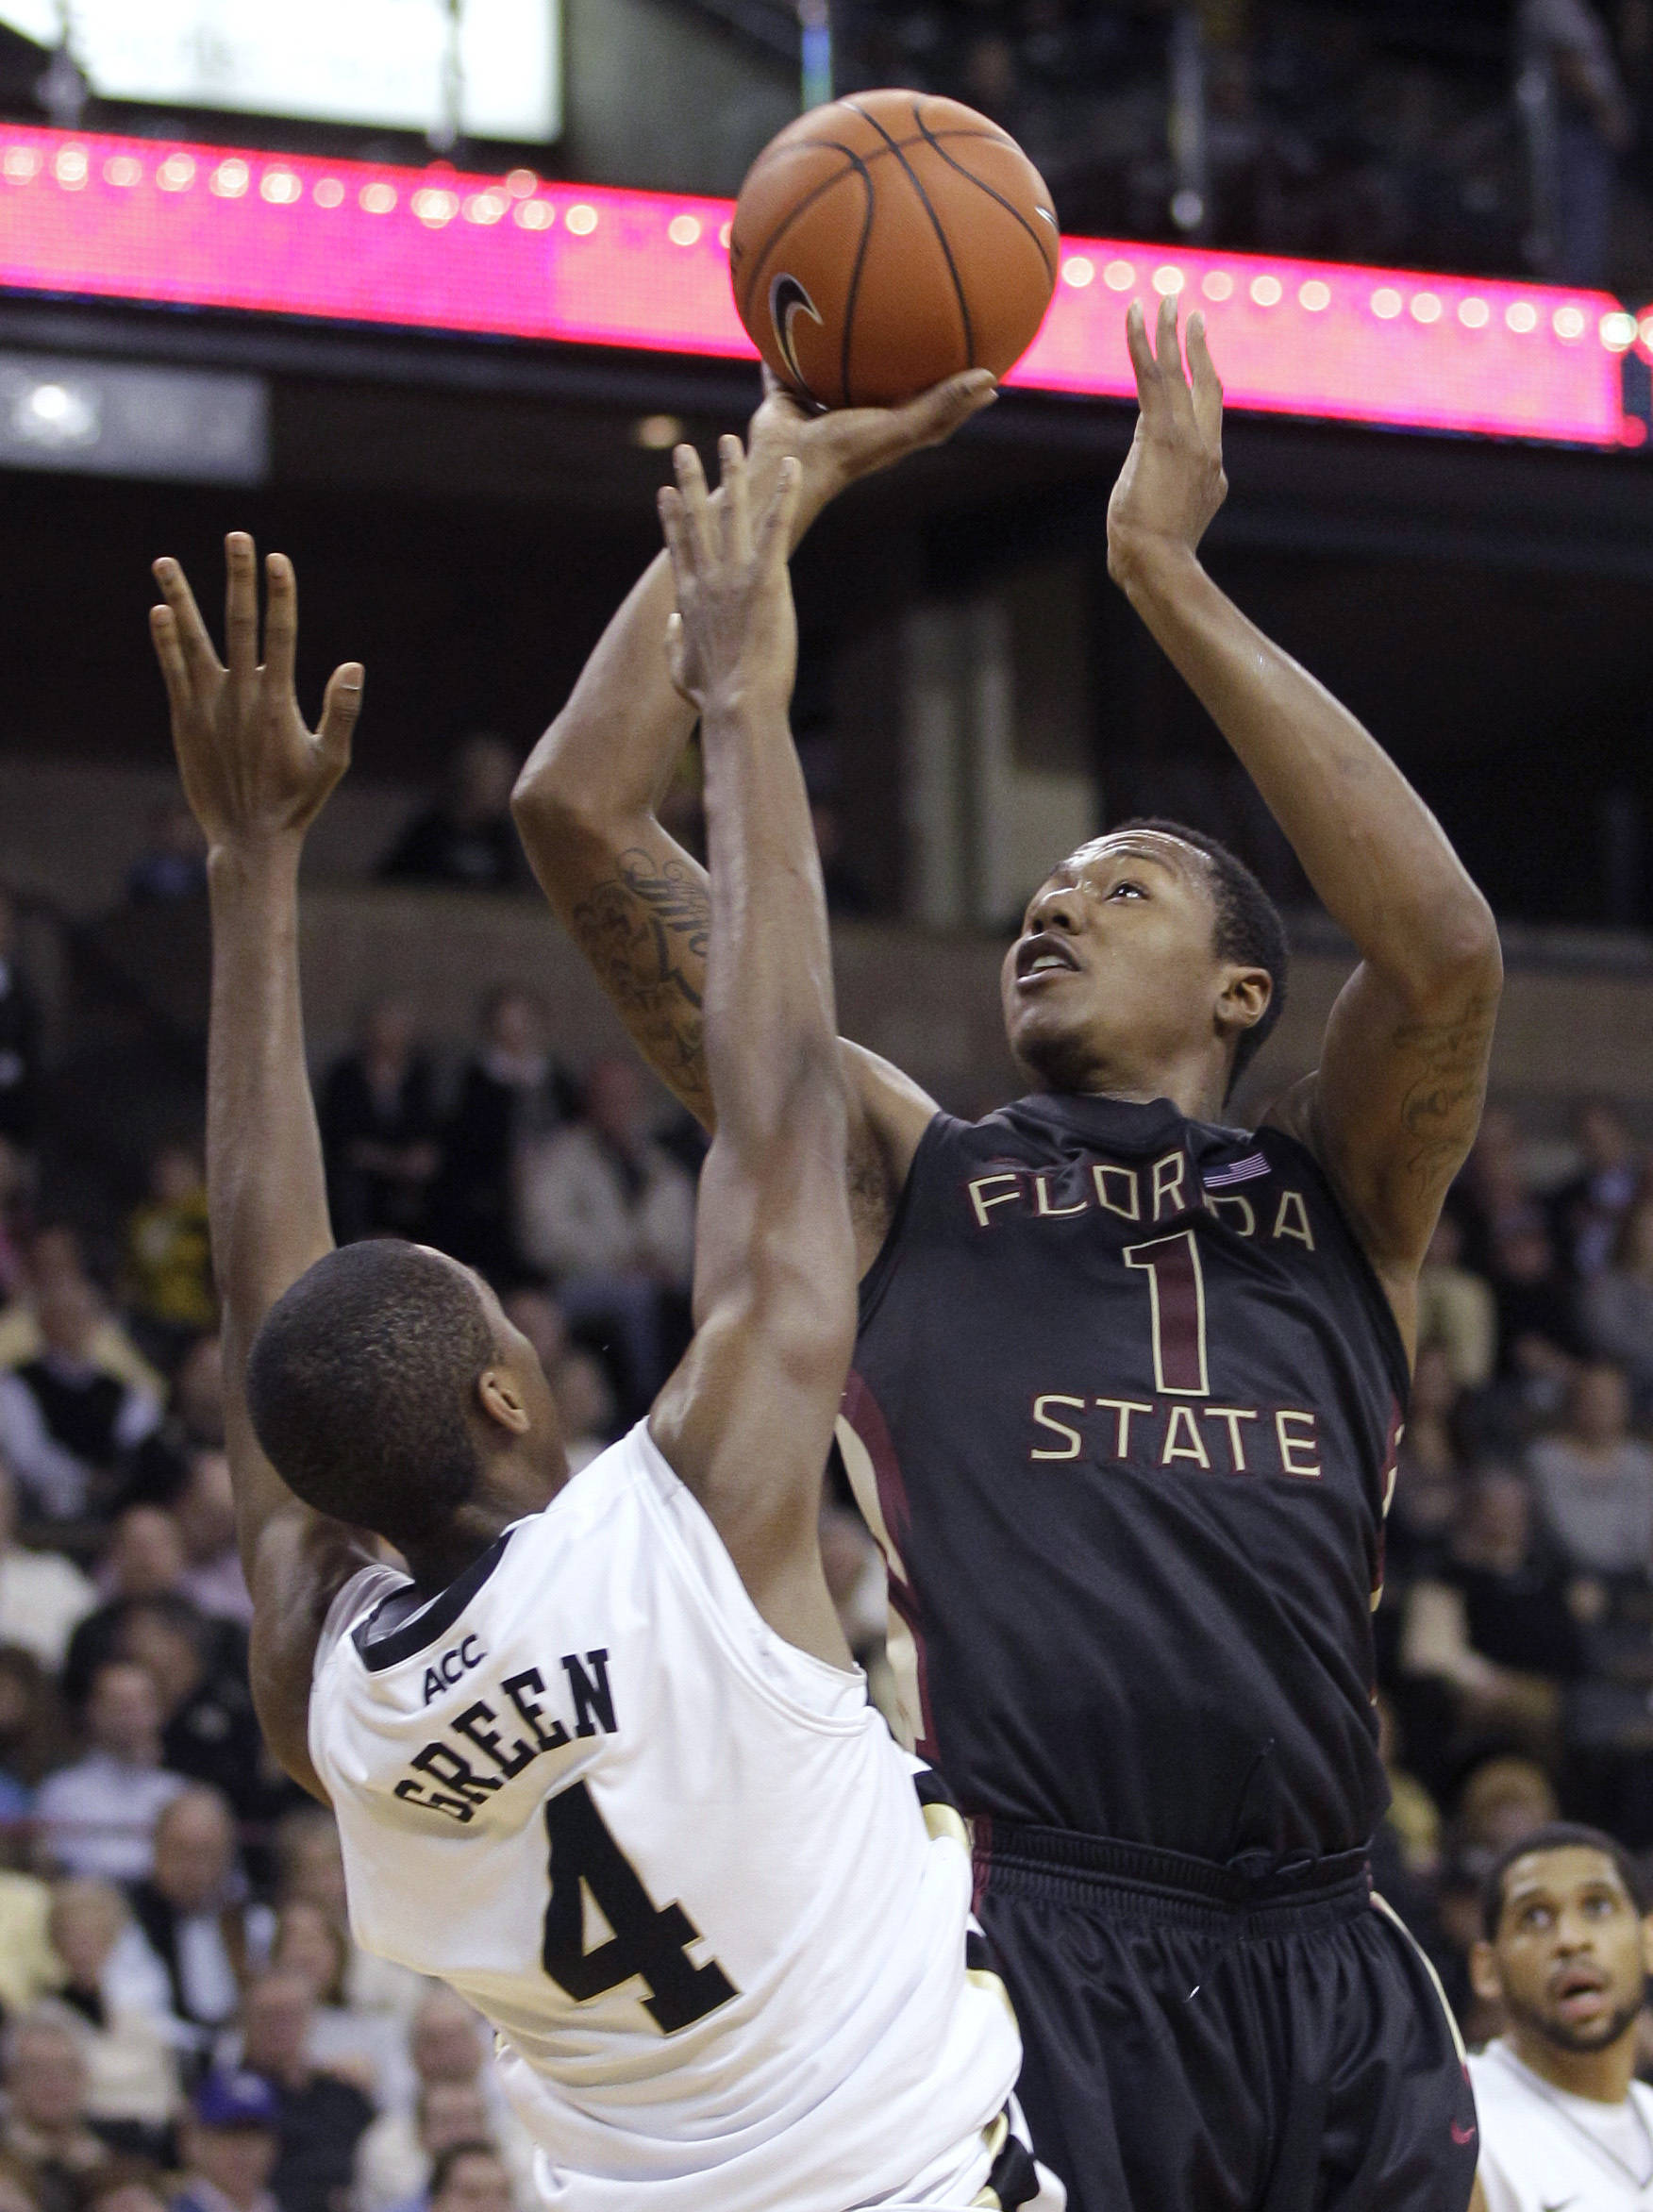 Florida State's Xavier Gibson shoots over Wake Forest's Daniel Green. (AP Photo/Chuck Burton)